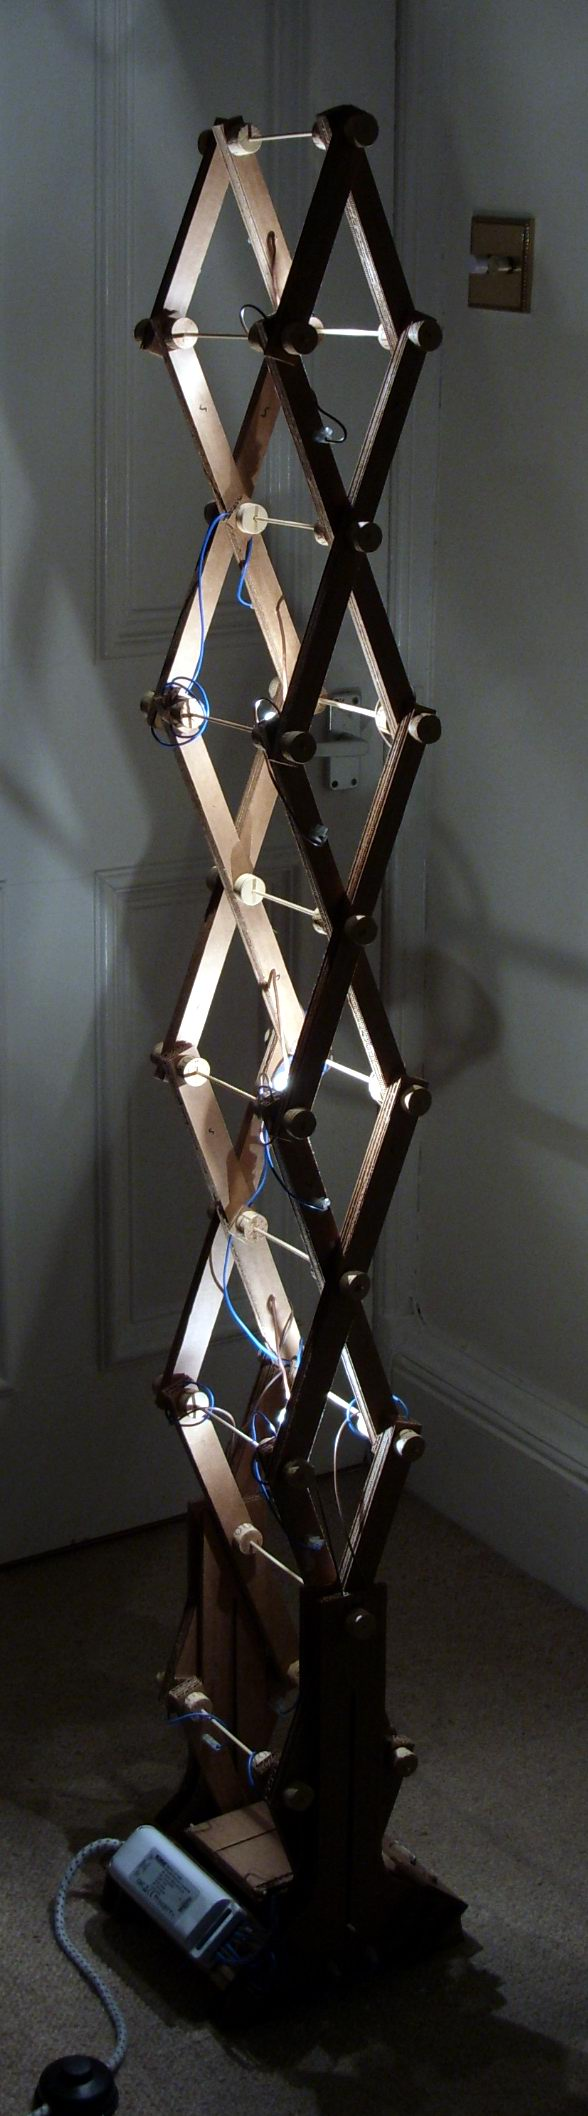 Picture of Mechanical Expanding Cardboard Lamp - This Way Up!